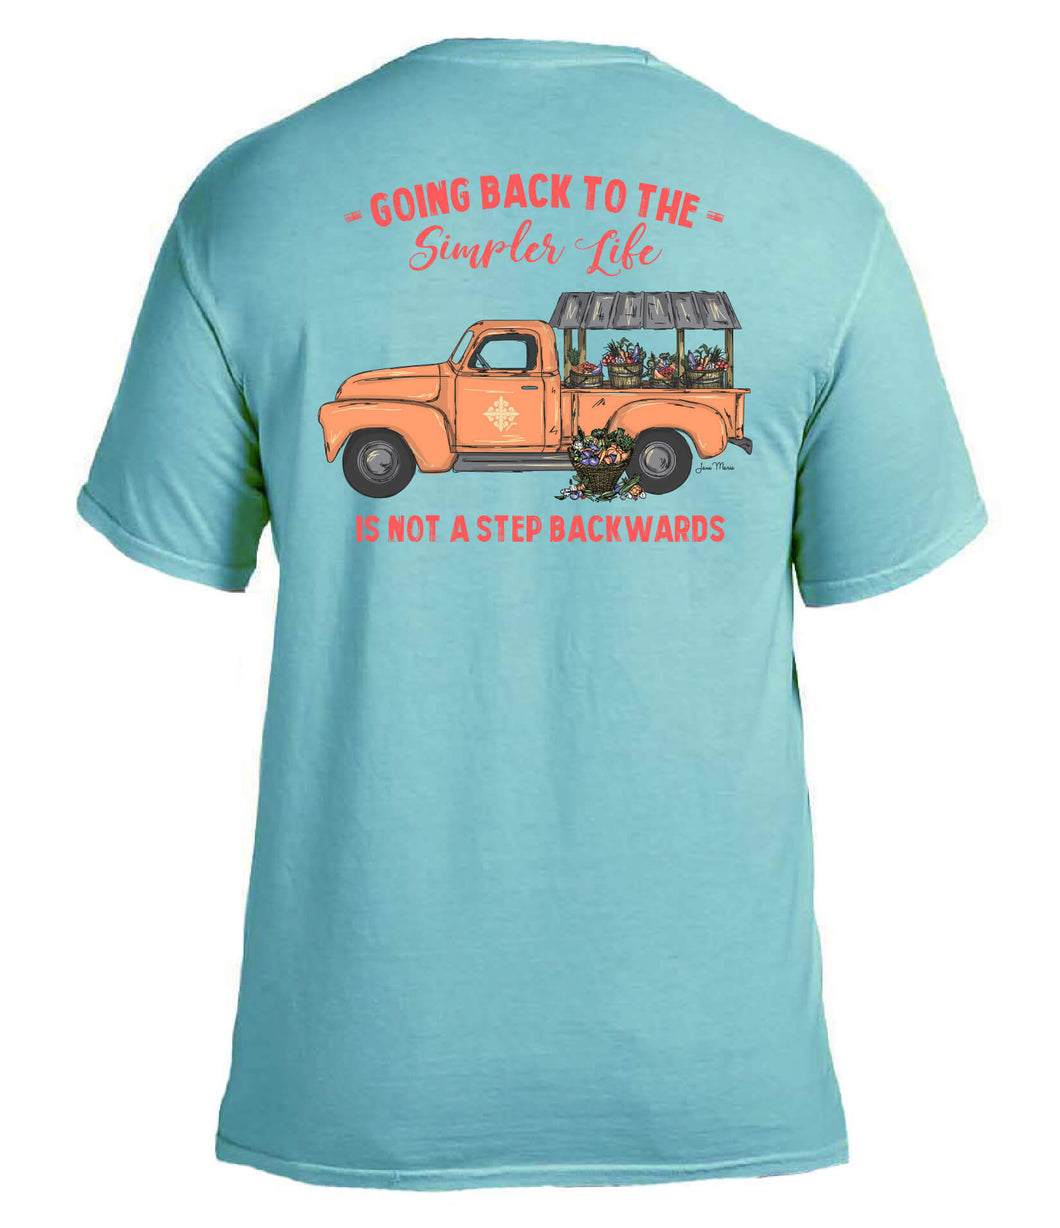 Going back to the simpler life simply southern style tshirt tee little old pickup truck fall halloween pumpkins